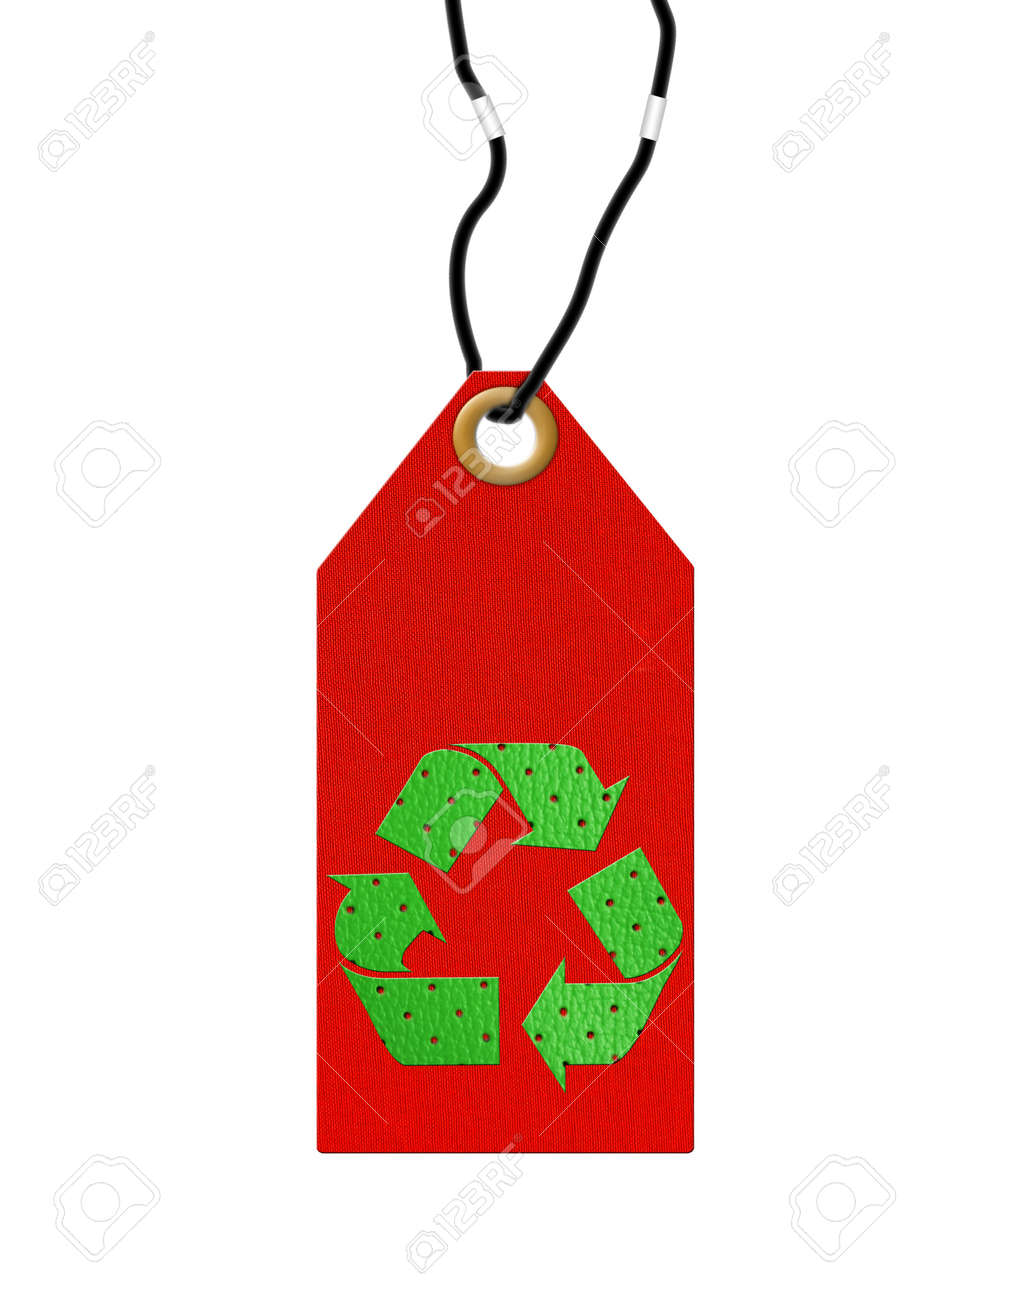 red tag with green recycle symbol Stock Photo - 8462015